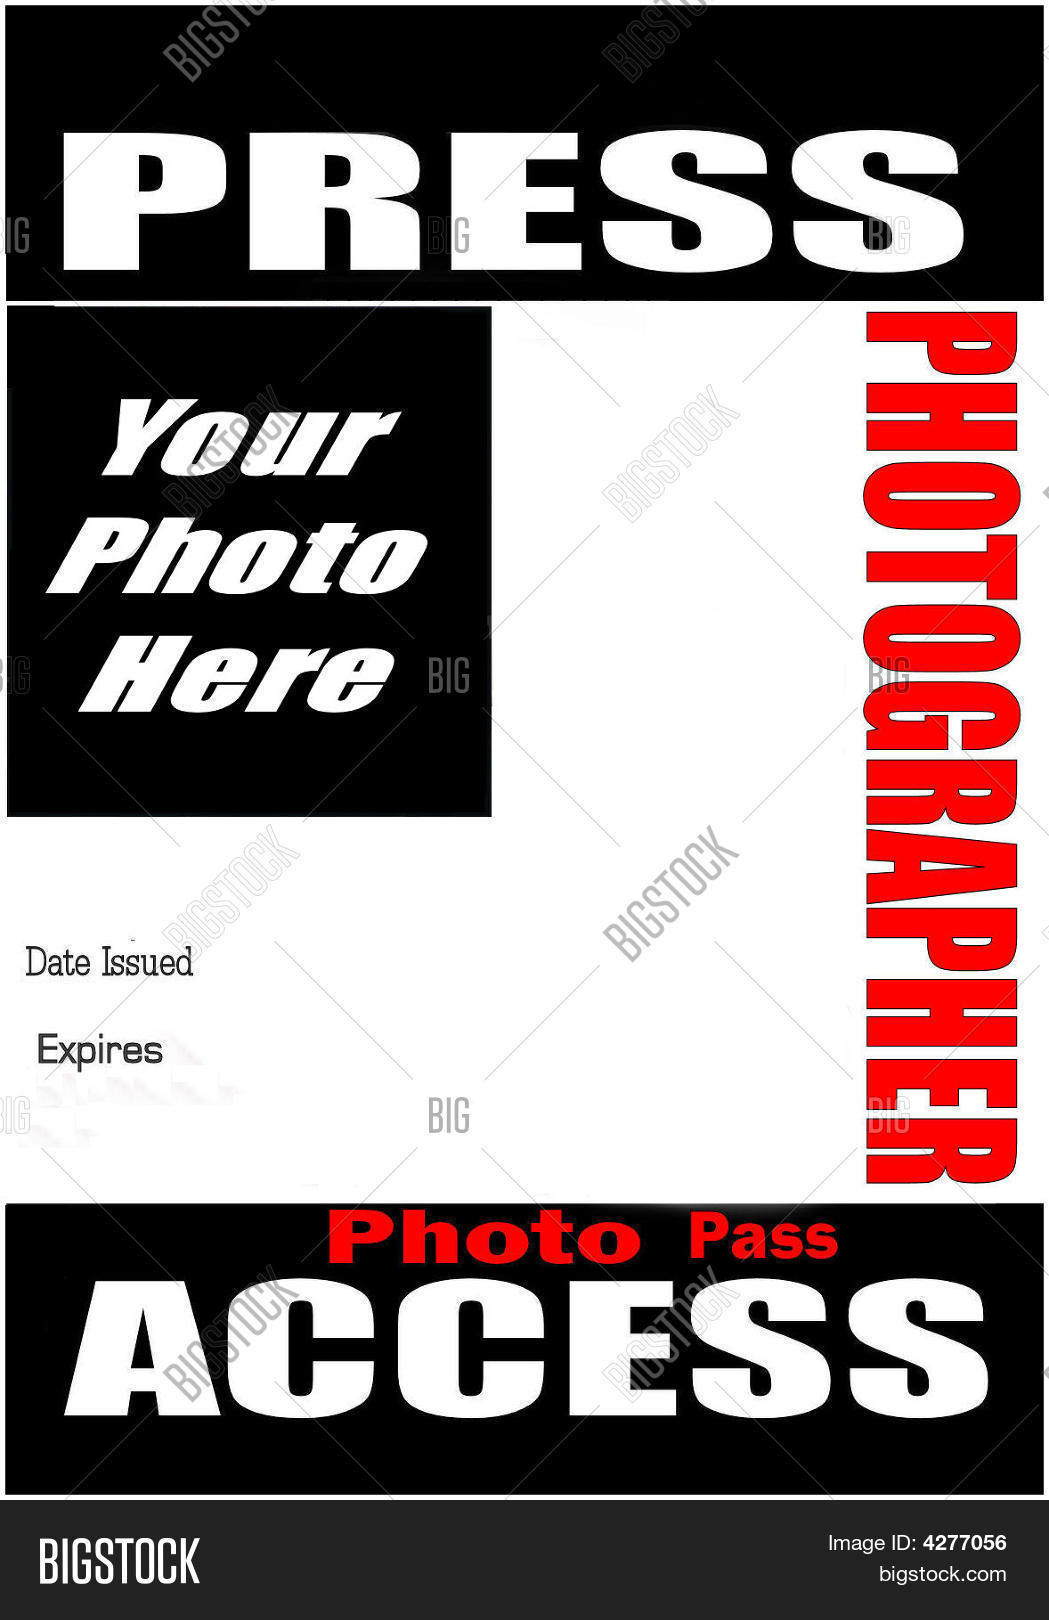 Daily planet press badge template the for Media press pass template